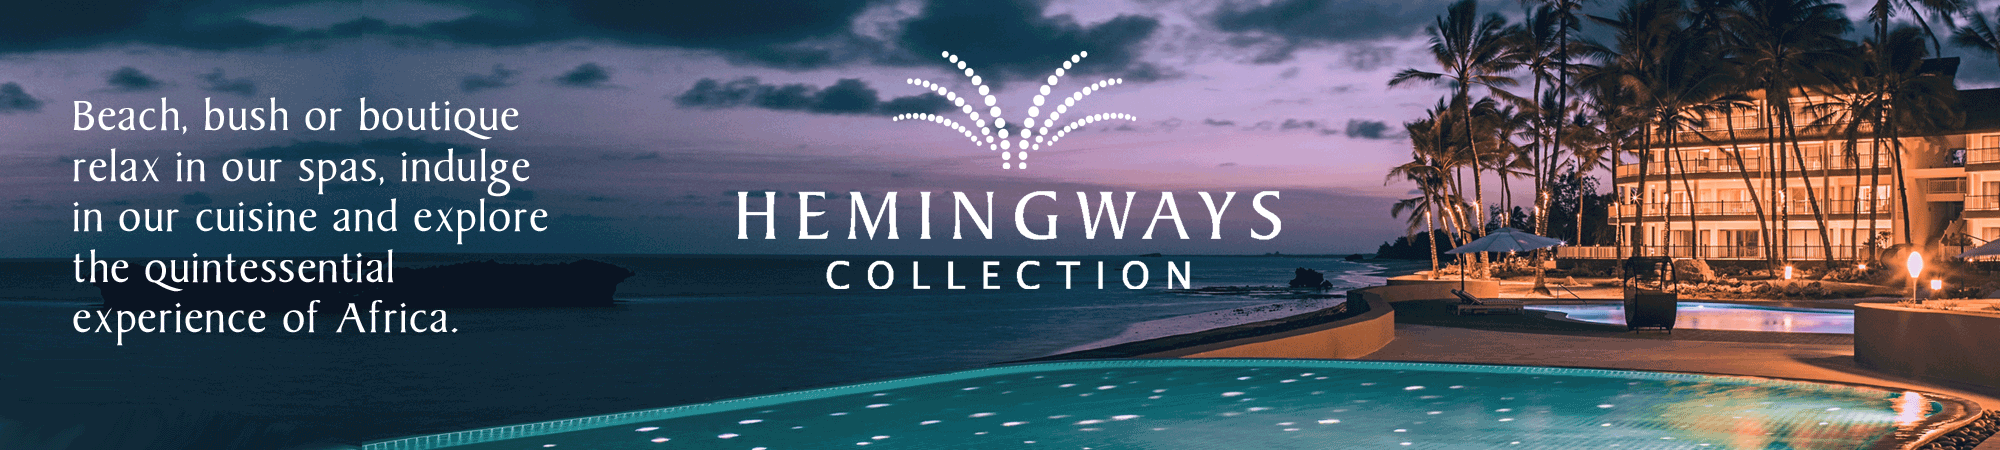 Hemingways Collection